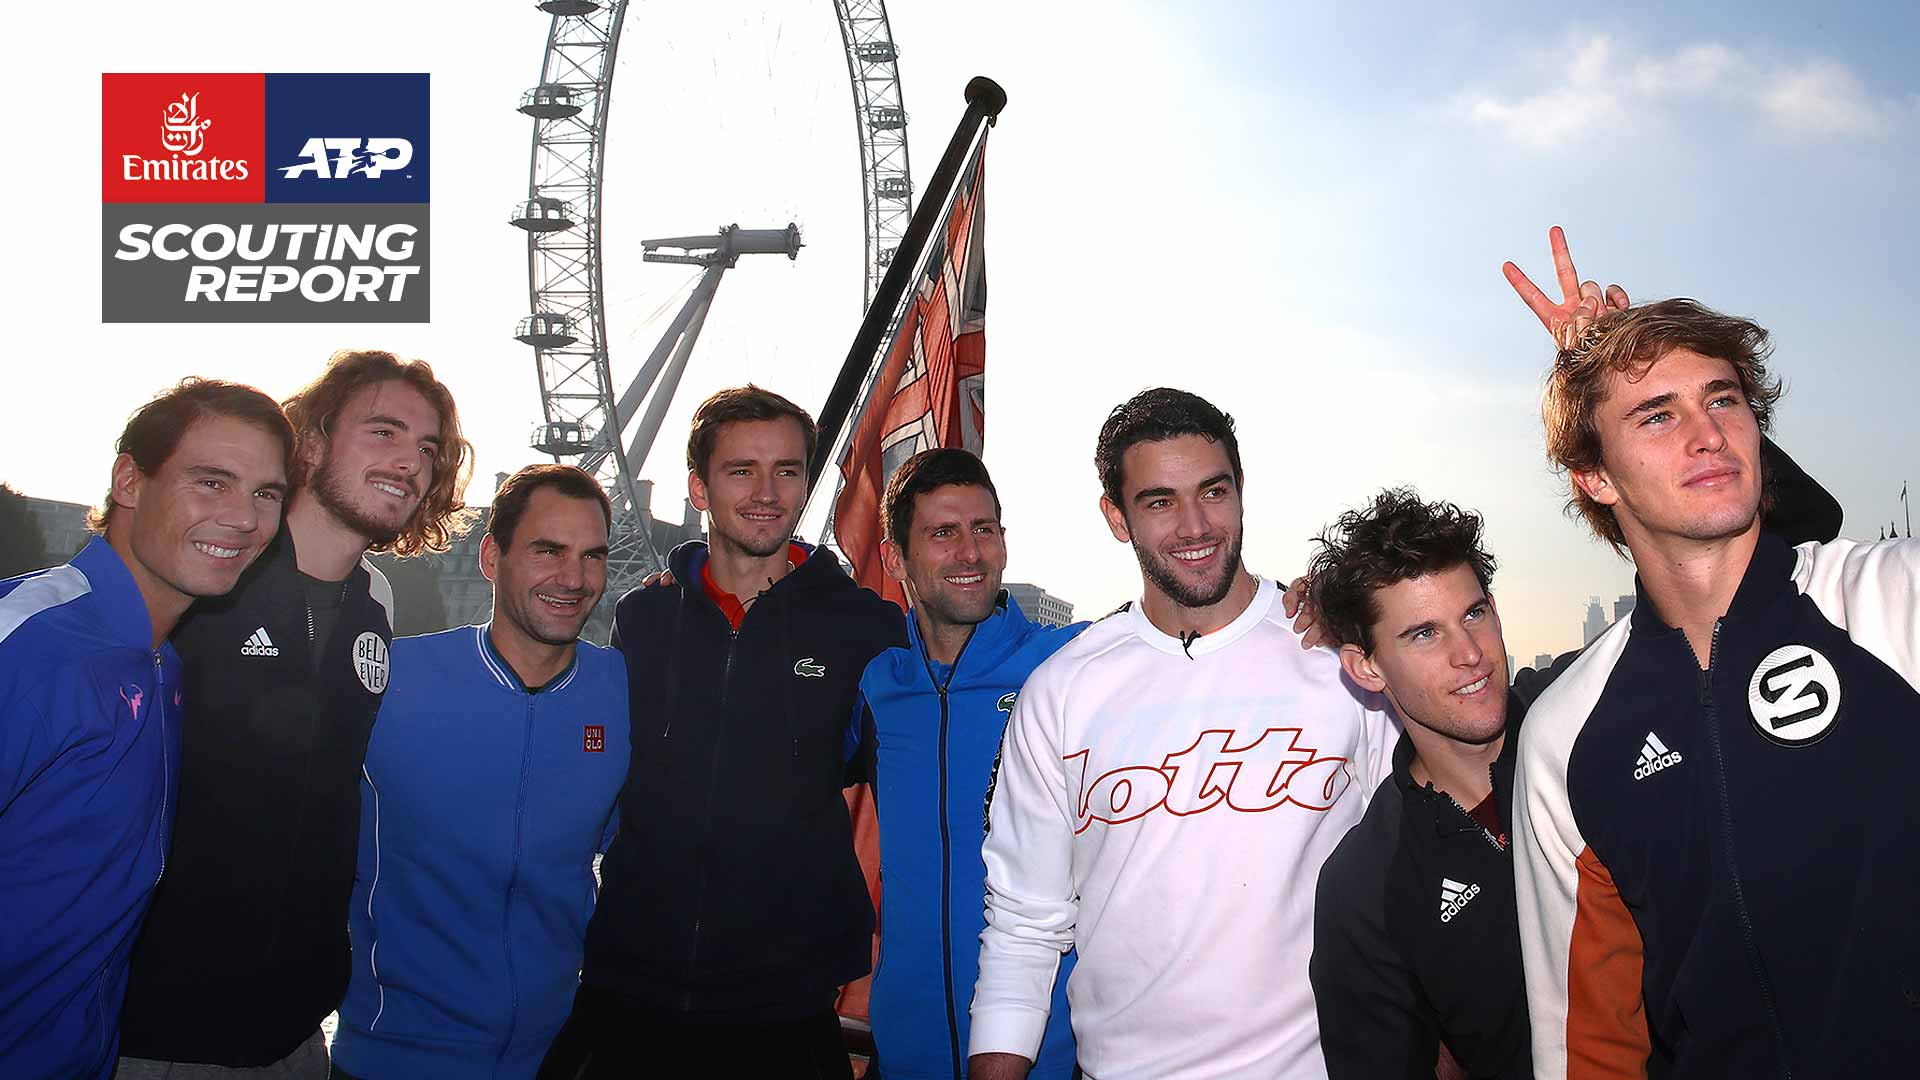 Nadal, Tsitsipas, Federer, Medvedev, Djokovic, Berrettini, Thiem, Zverev | 2019 Nitto ATP Finals | The O2 in London